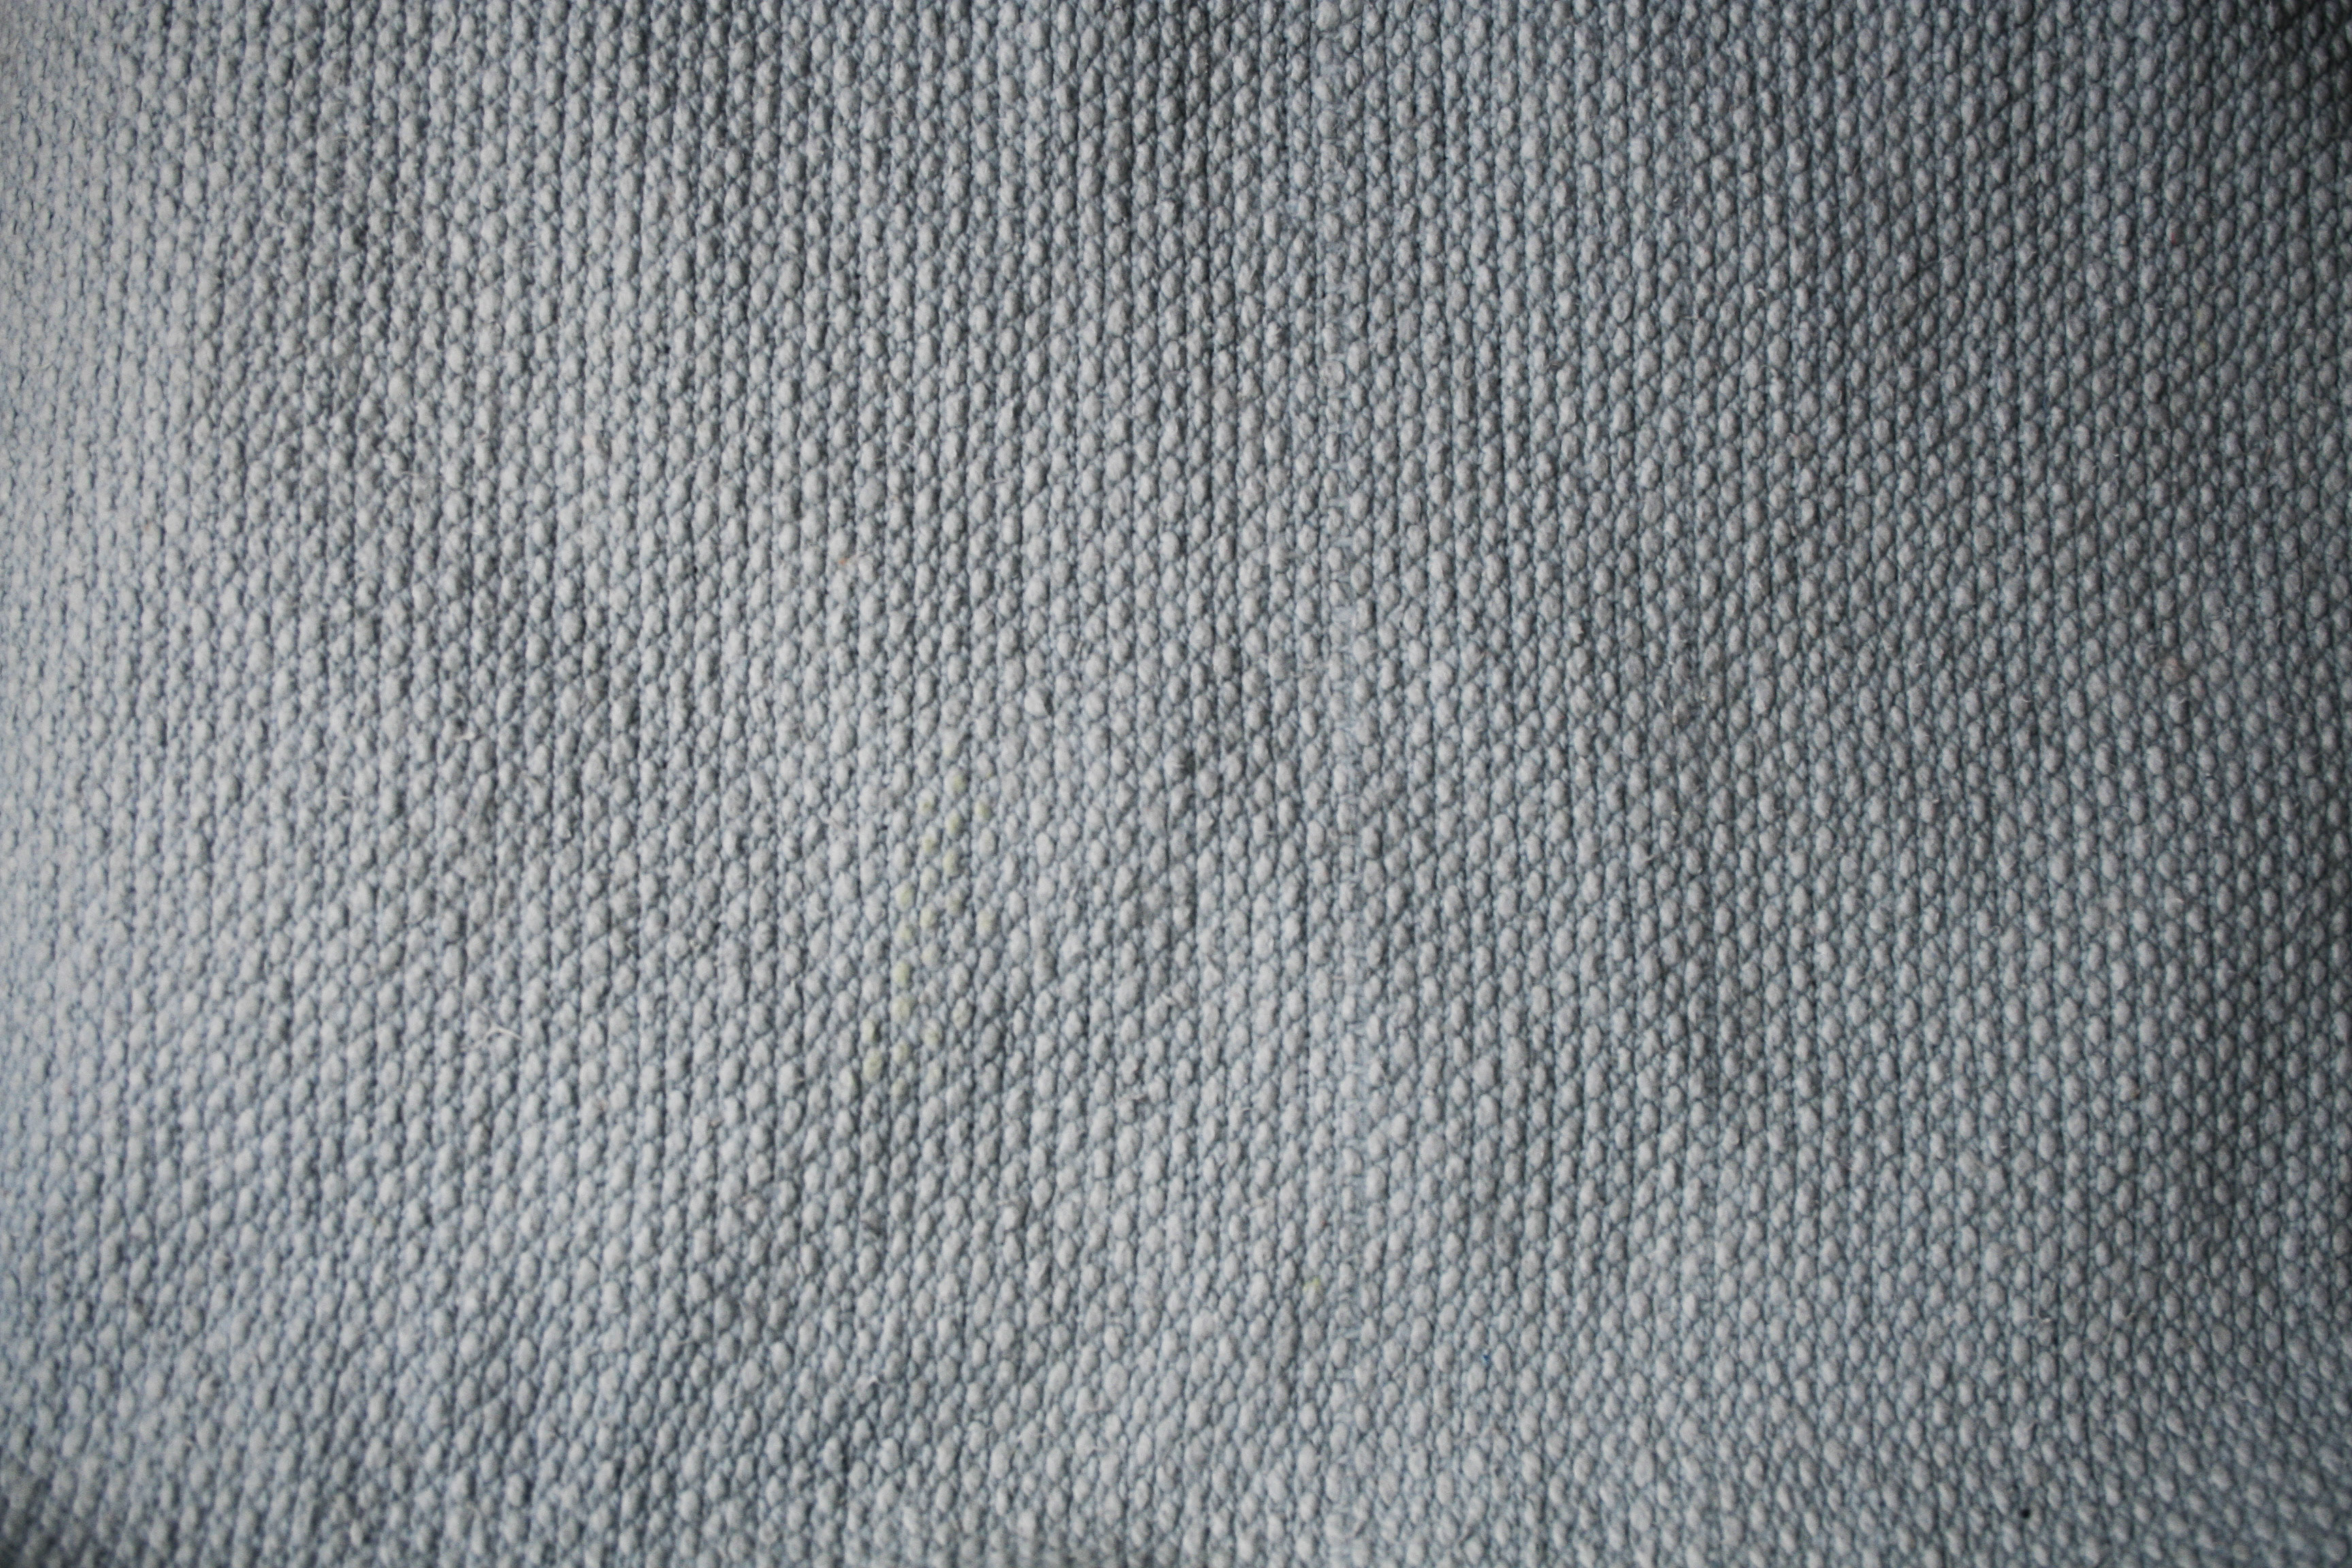 Reticulate Textile Texture Textures For Photoshop Free